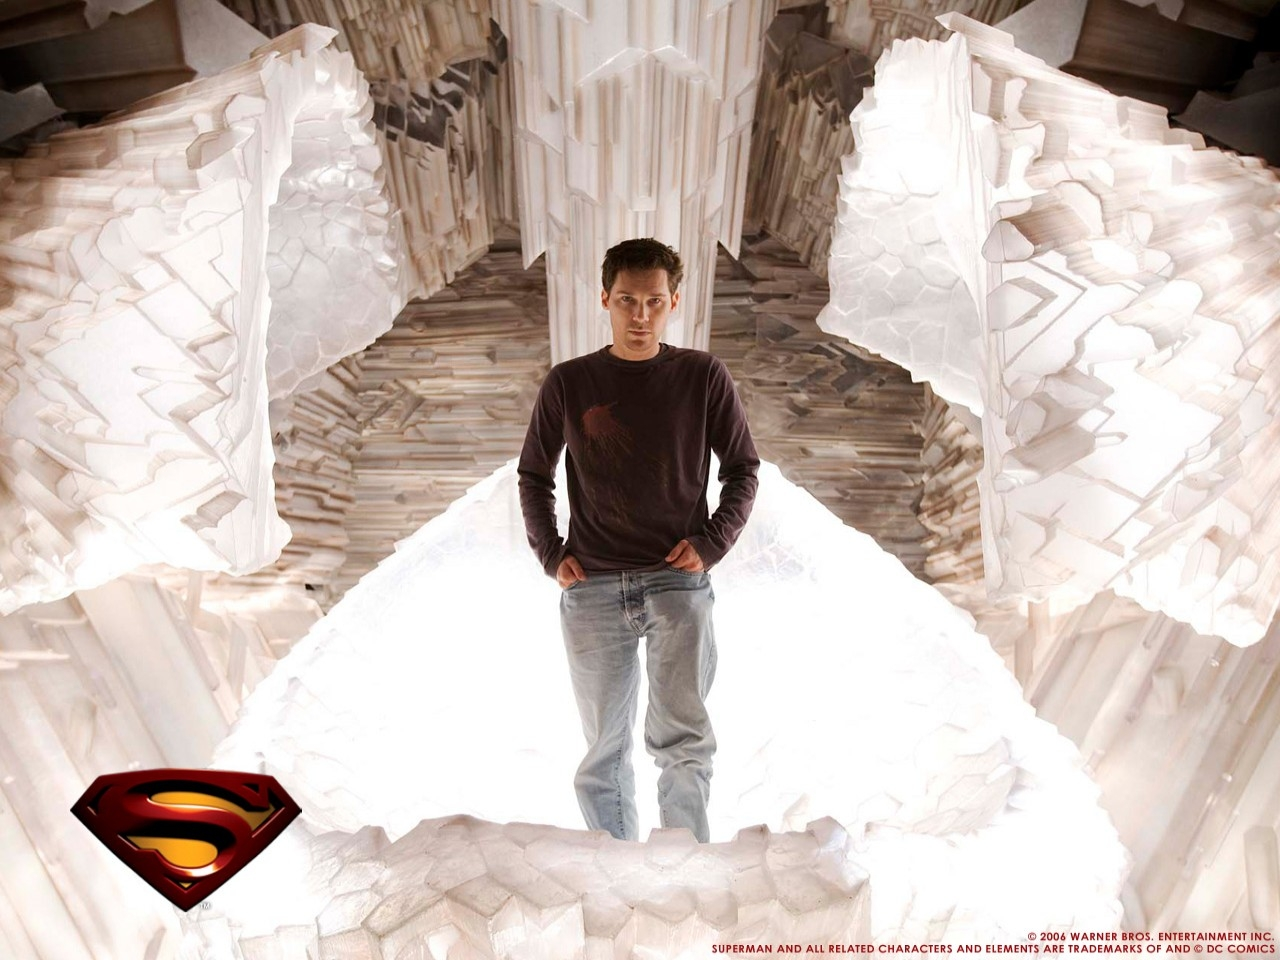 Wallpaper del film Superman Returns con una bella immagine di Brandon Routh